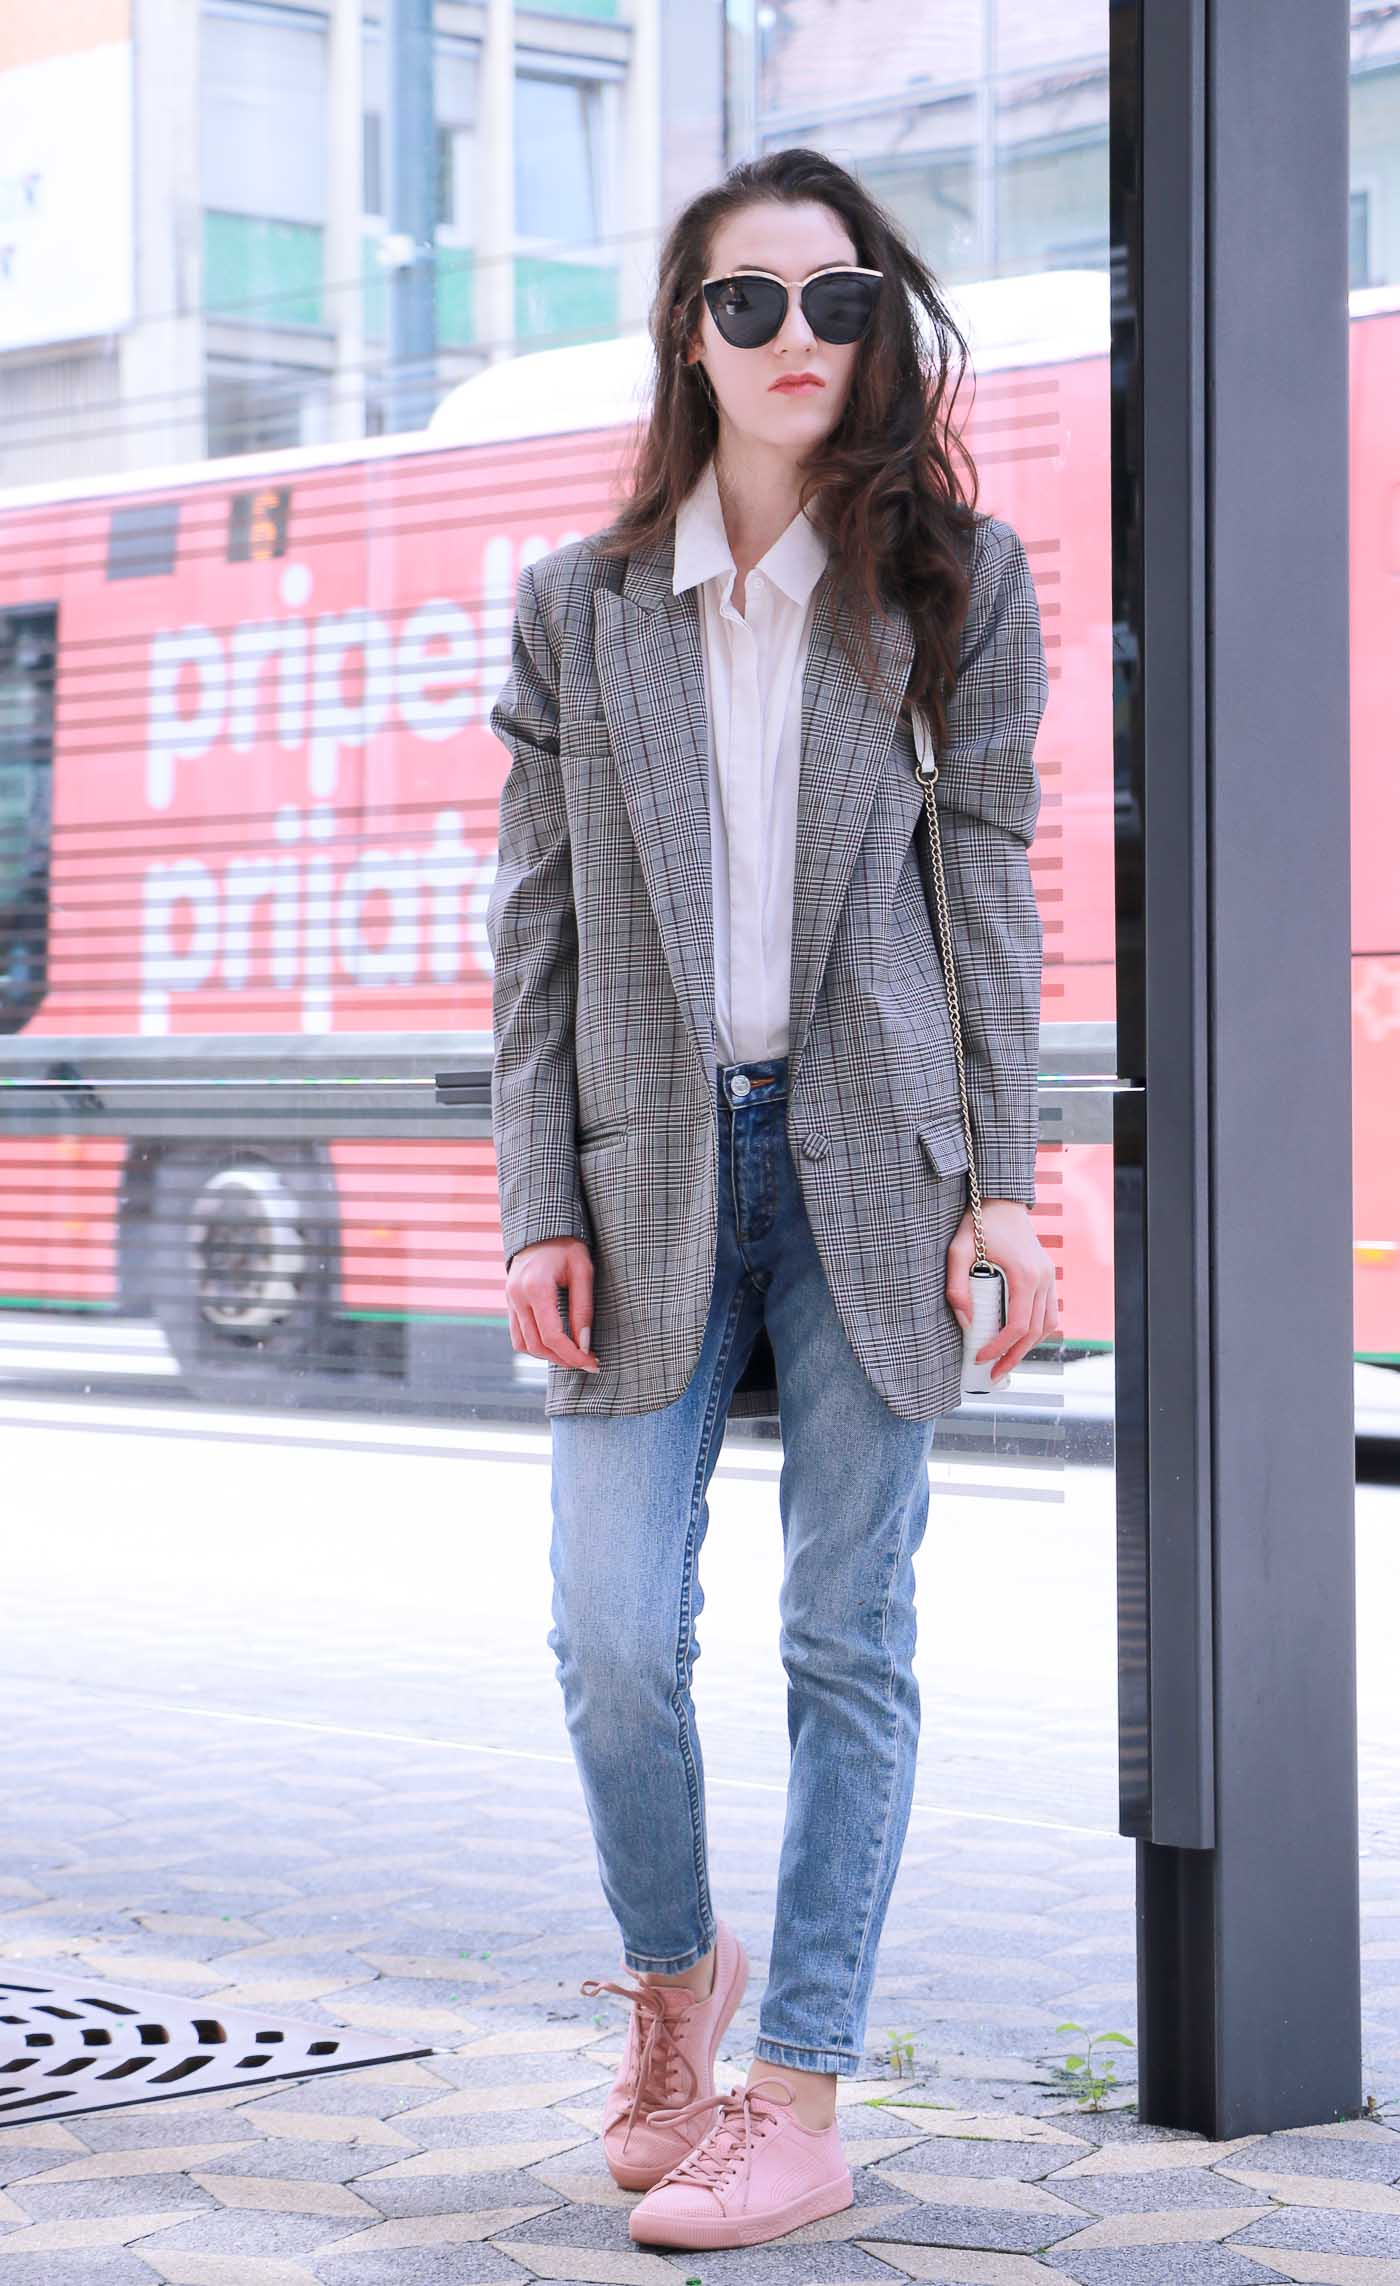 Fashion Blogger Veronika Lipar of Brunette from Wall Street sharing 5 Casual Outfits to wear this fall